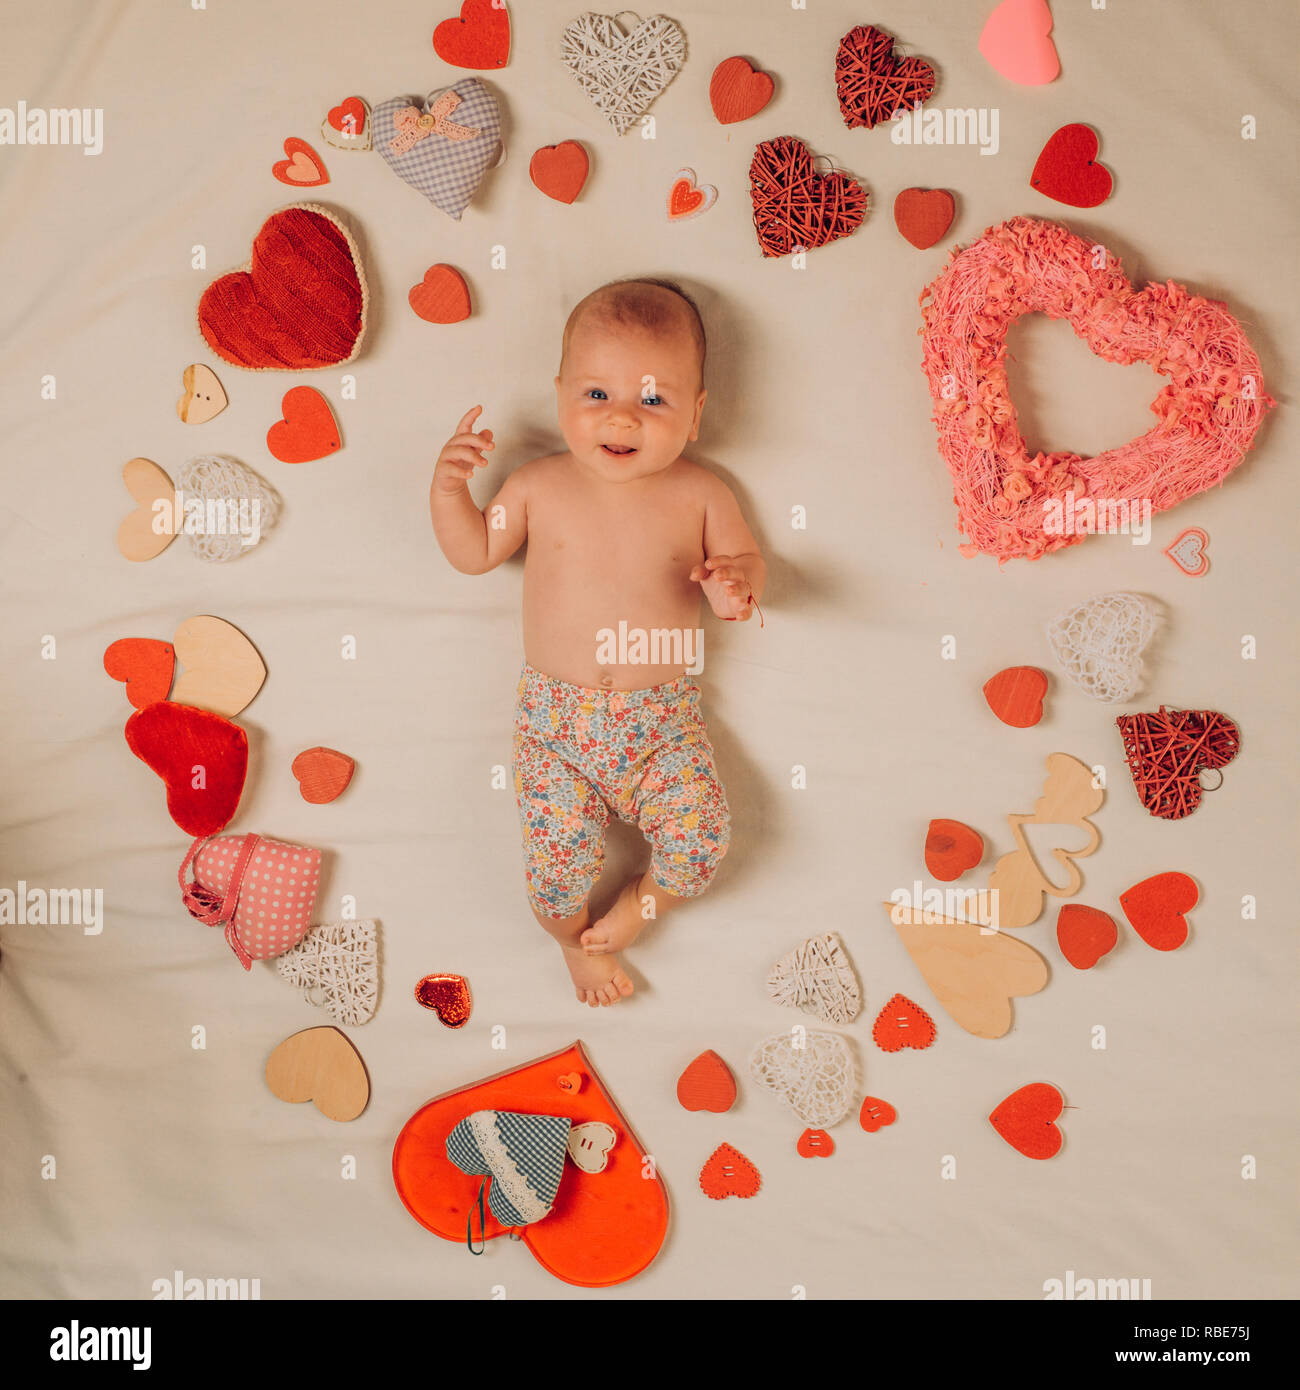 I love you  Family  Child care  Sweet little baby  New life